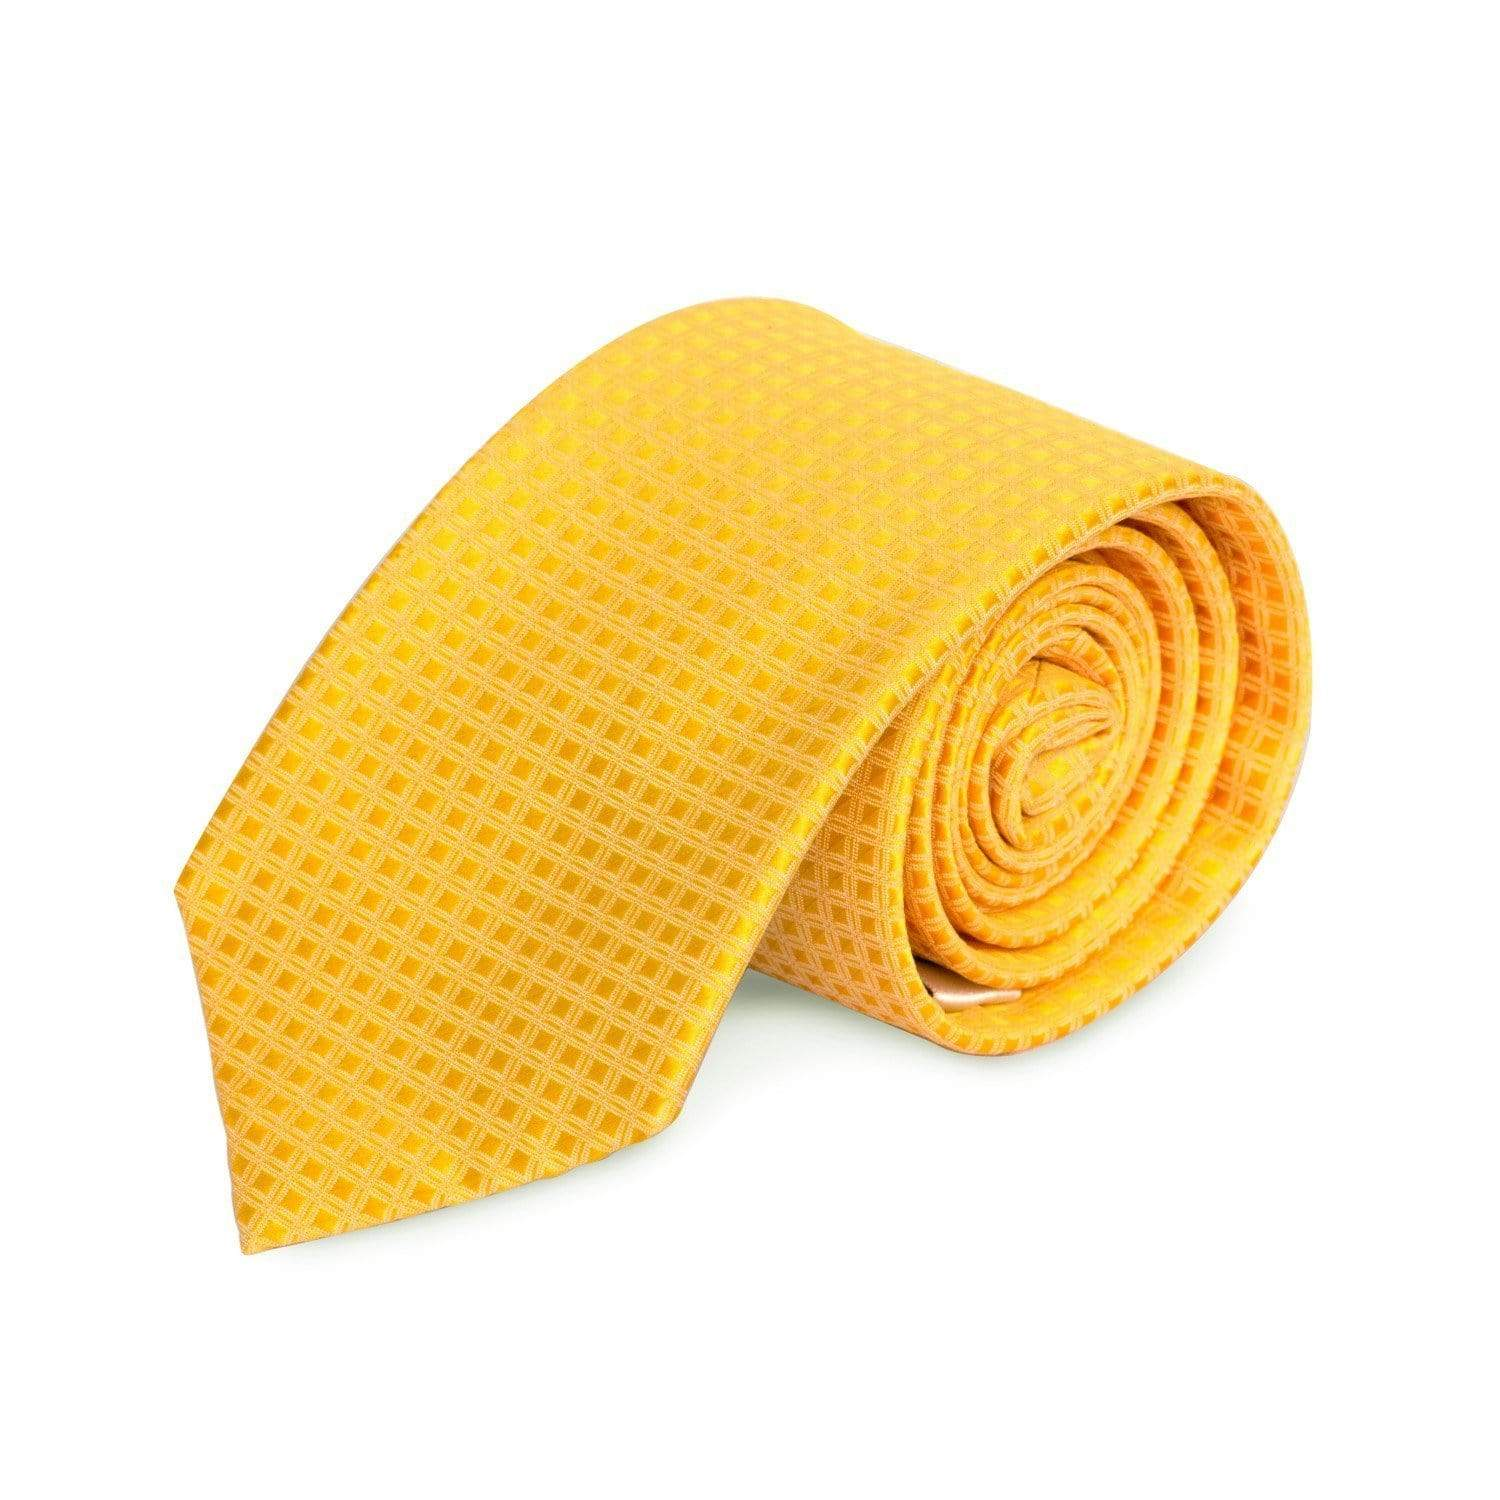 Yellow Square MF Tie Ties Cuffed.com.au